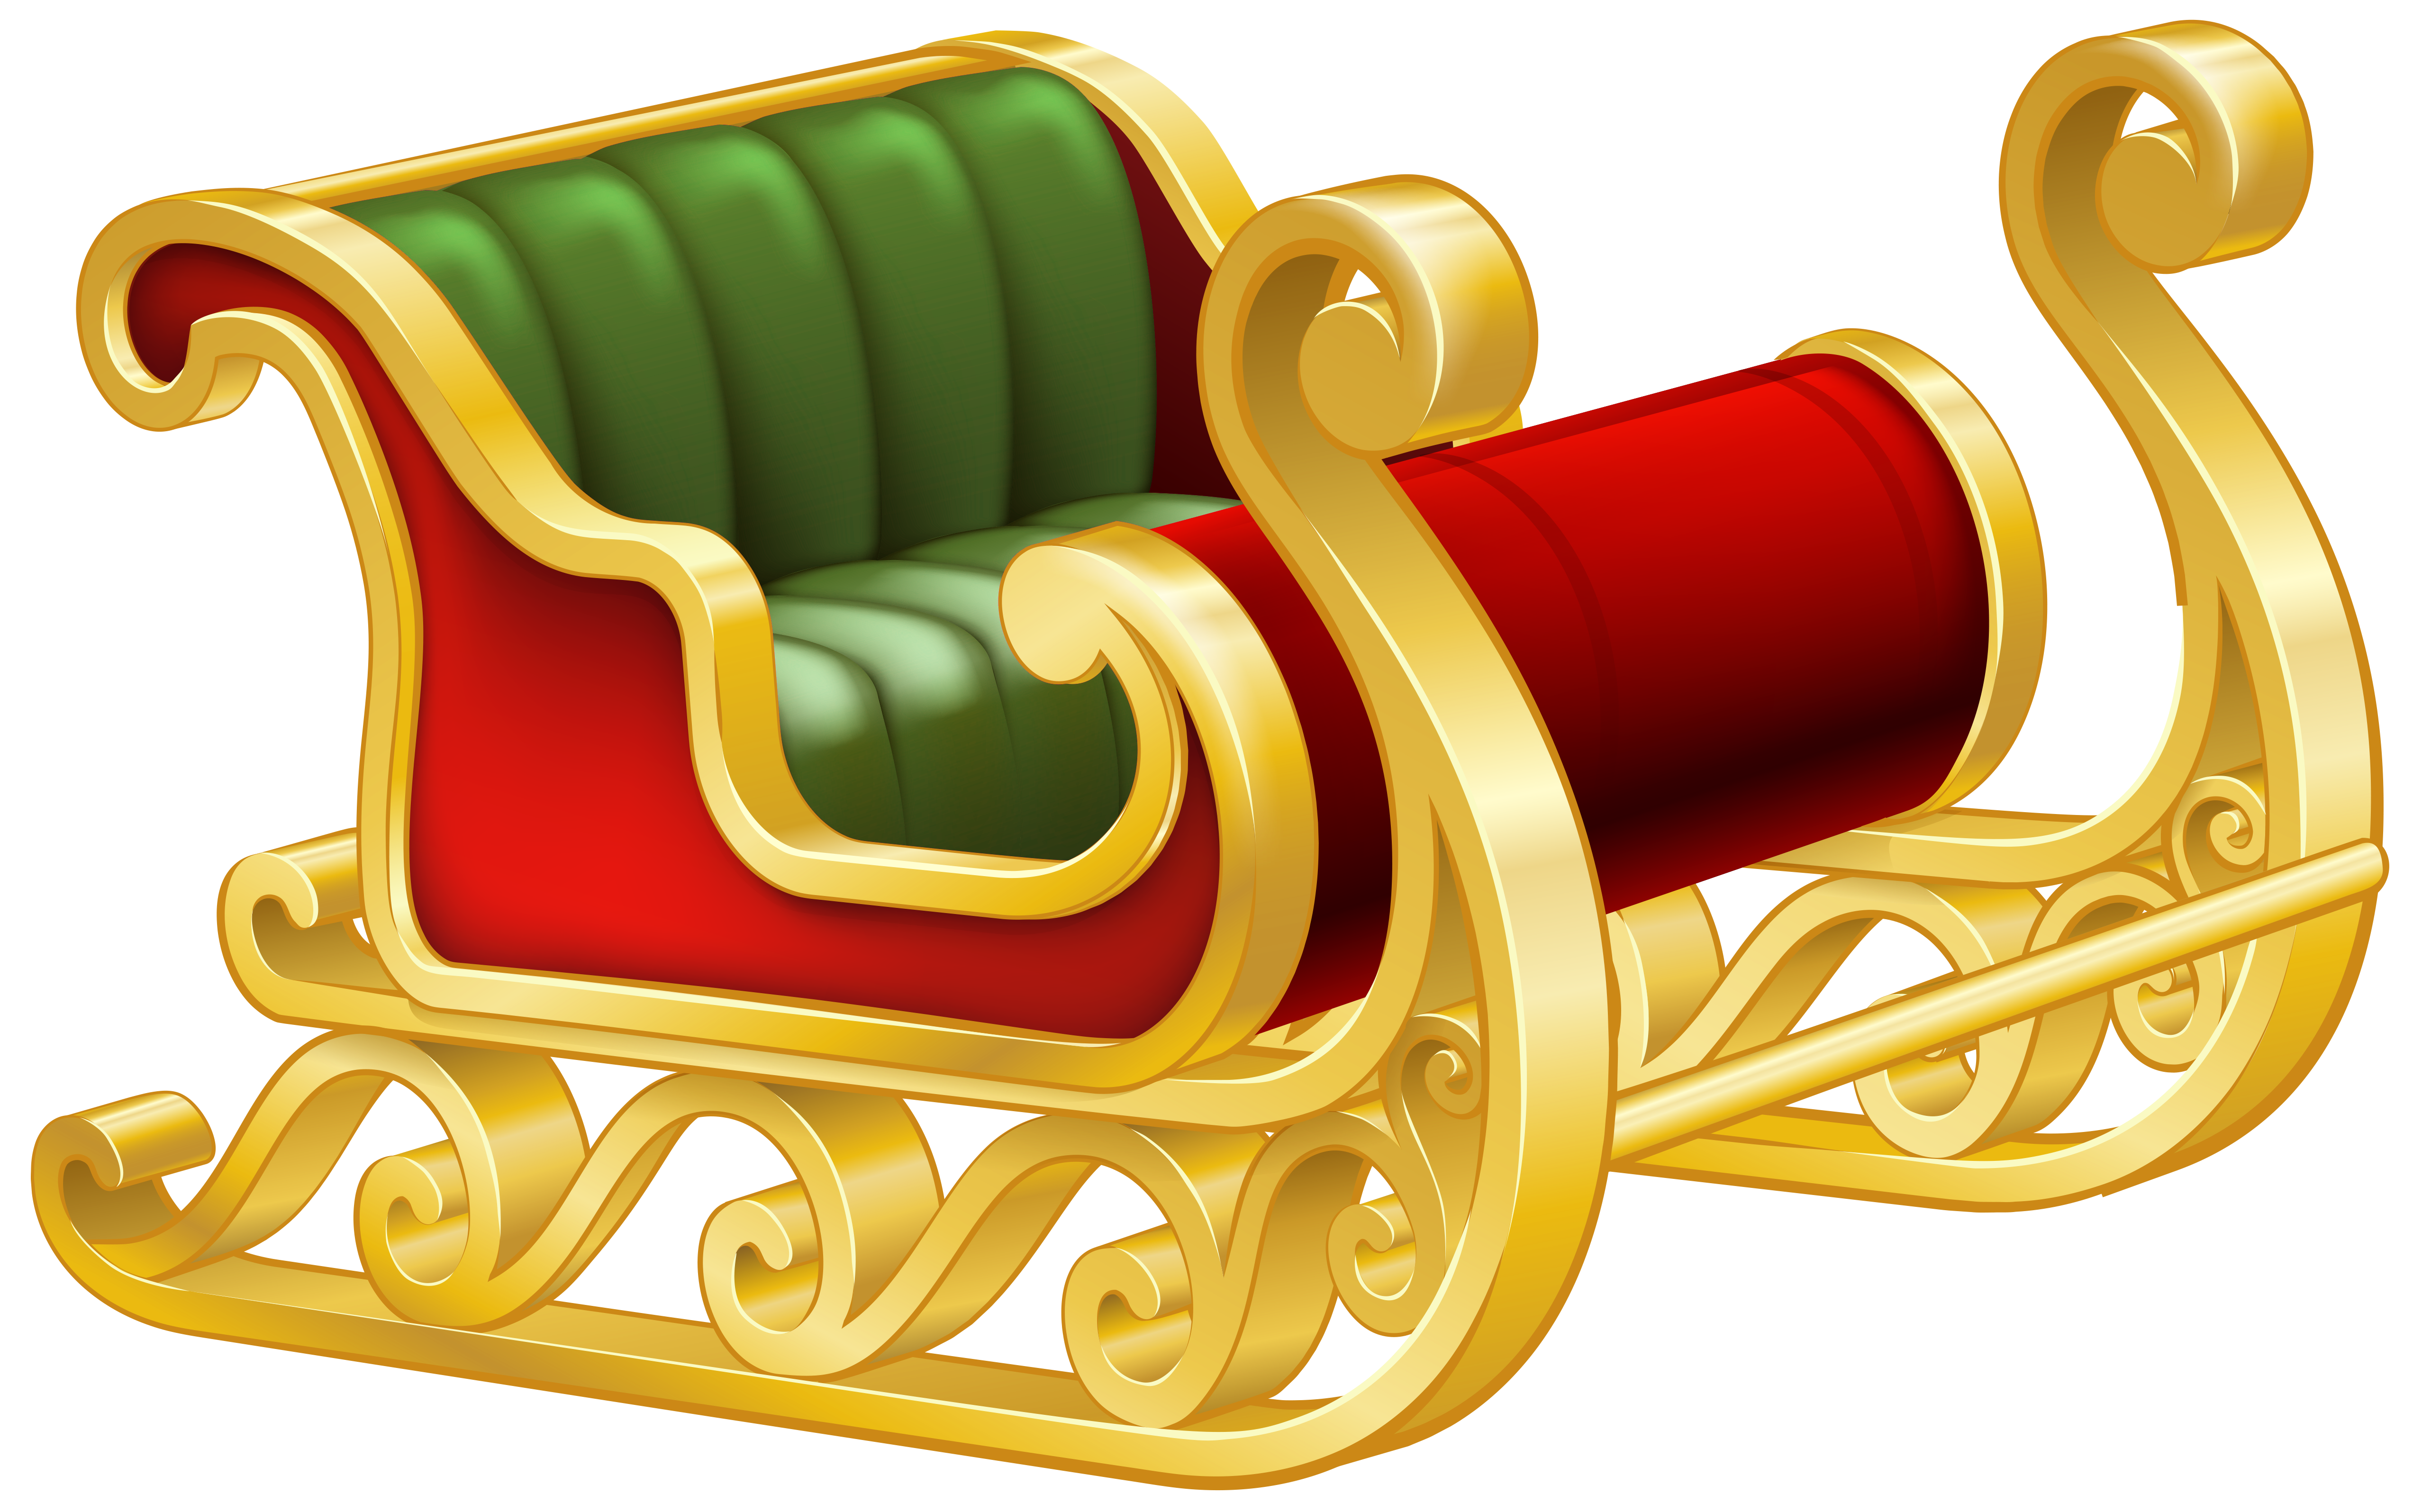 Christmas sleighs clipart free download Free Sleigh Cliparts, Download Free Clip Art, Free Clip Art on ... free download